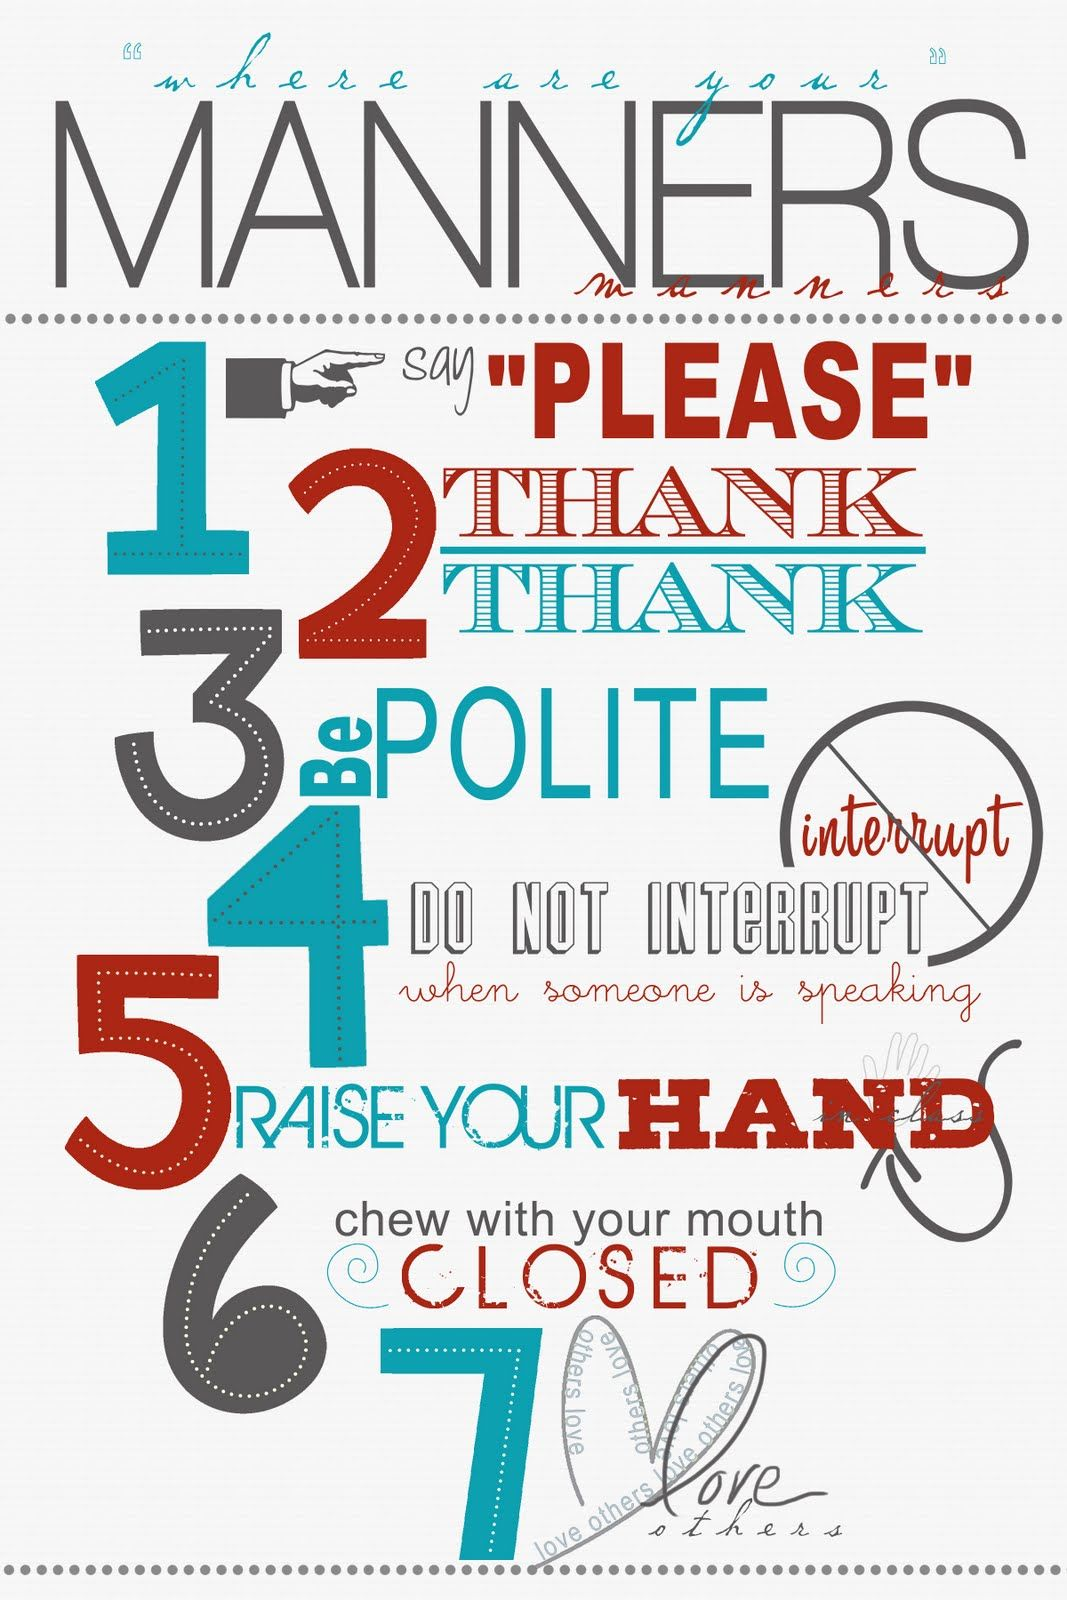 Manners They Are Under Valued And A Rarity But Those Who